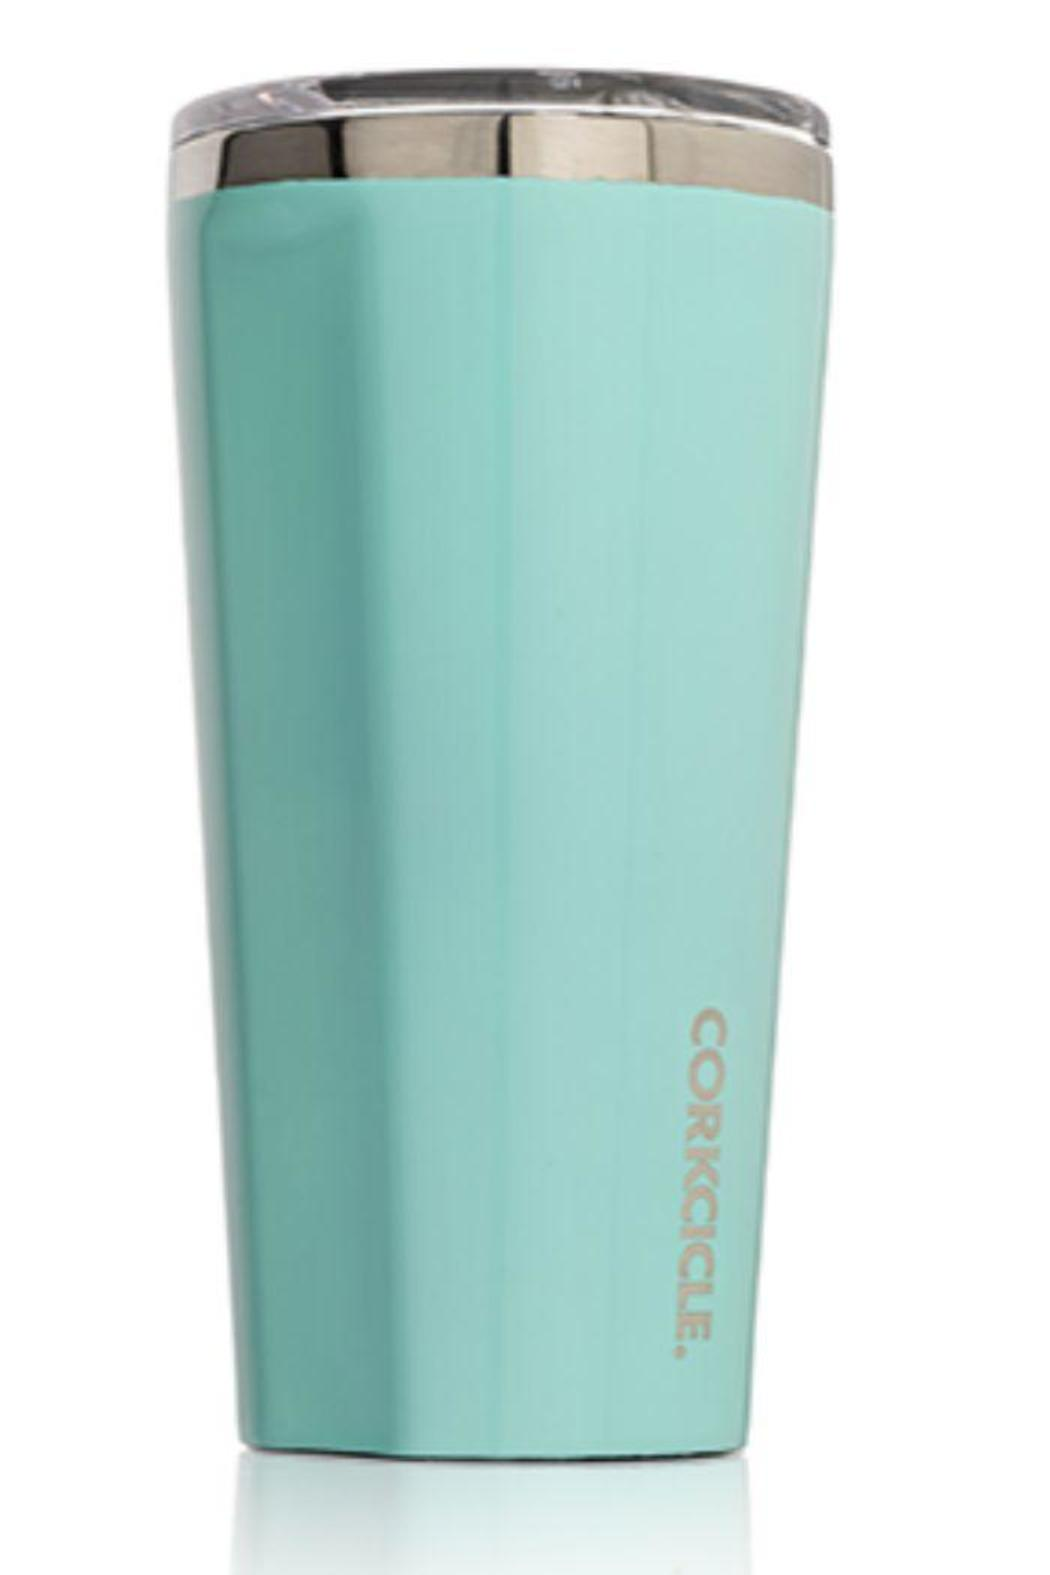 Corkcicle Insulated Tumbler From Kentucky By Simply B Gift